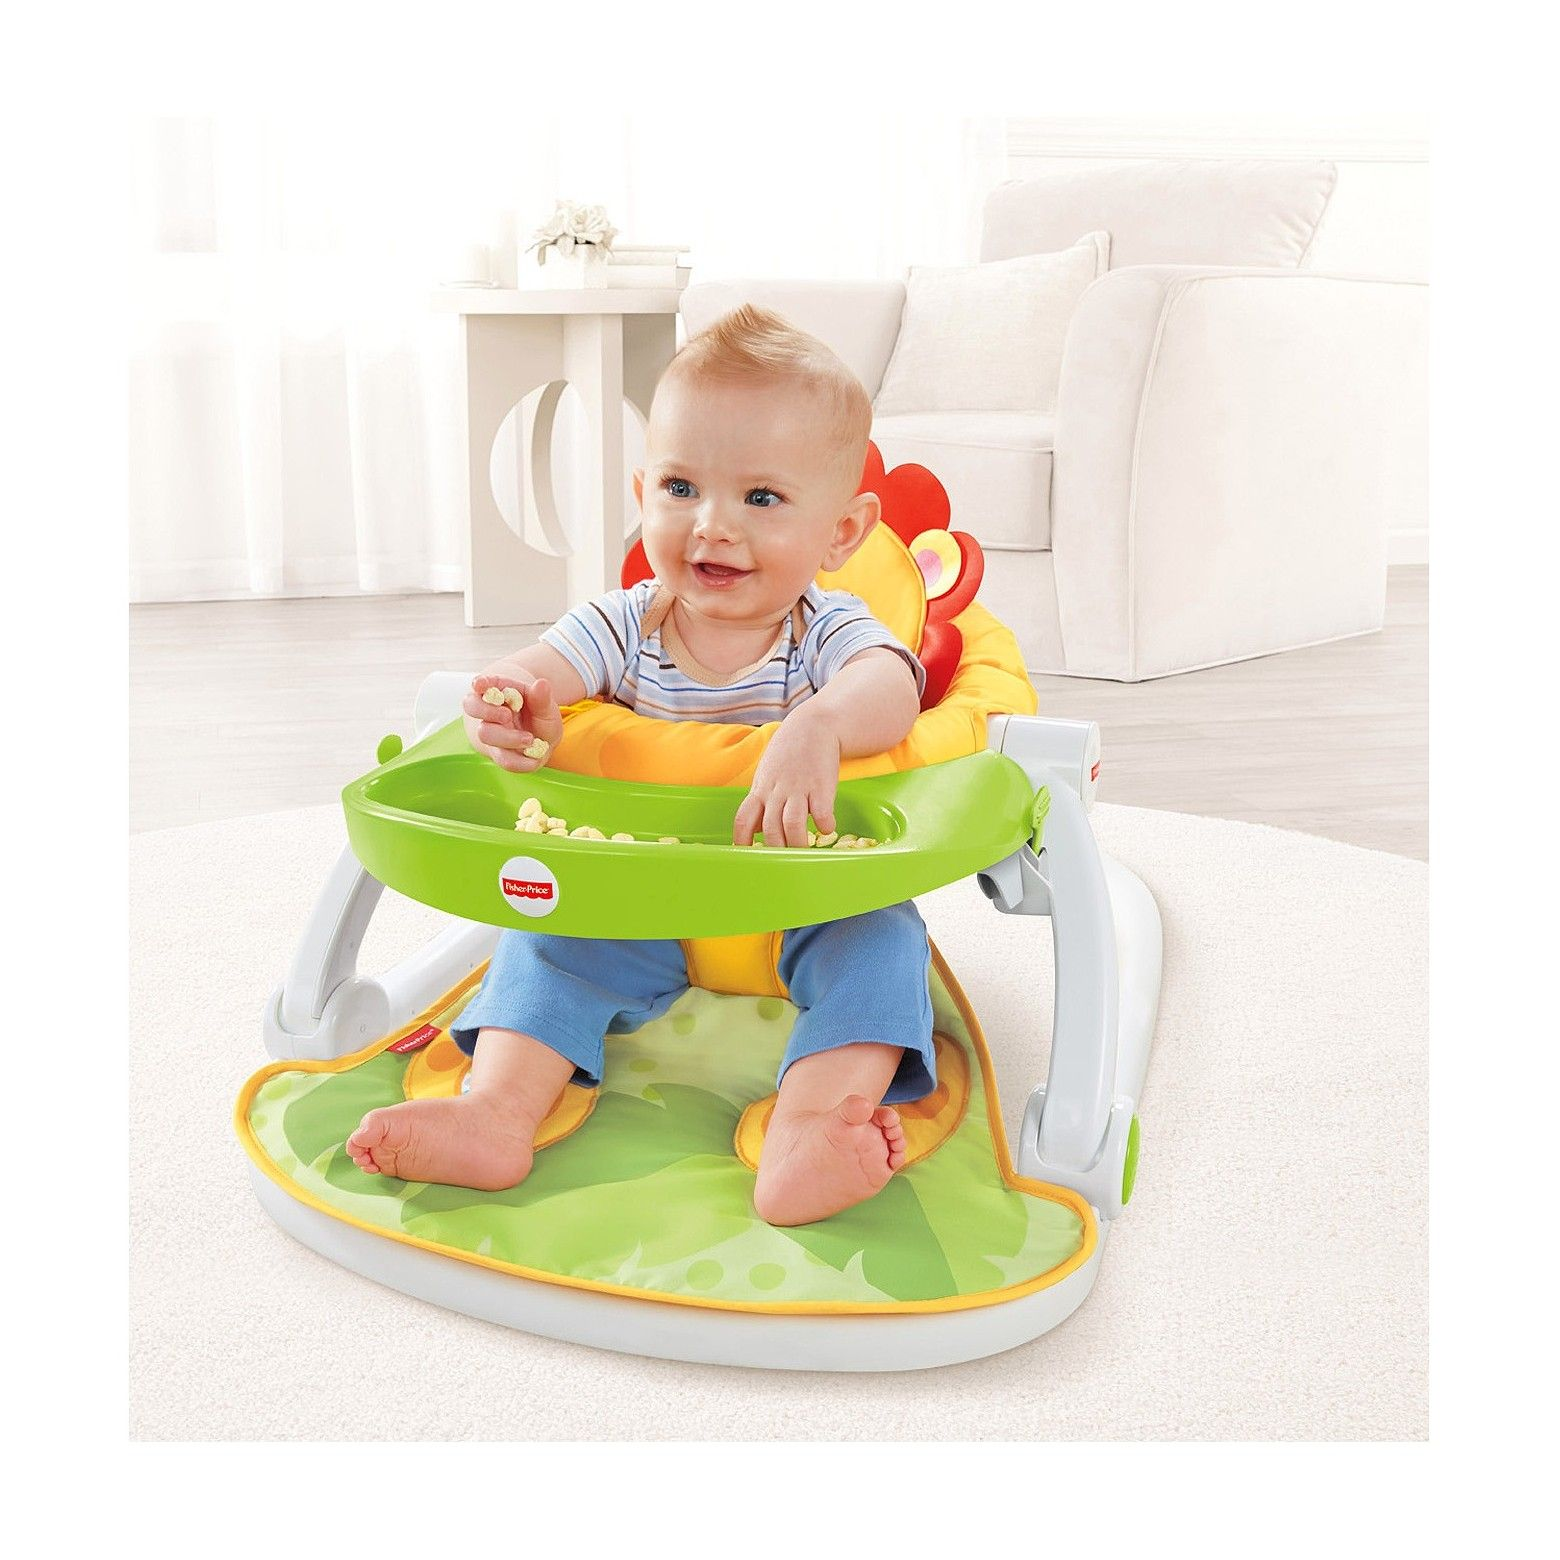 P Comfy Portable Seat Helps Baby Sit Up For Play Fisher Price Sit